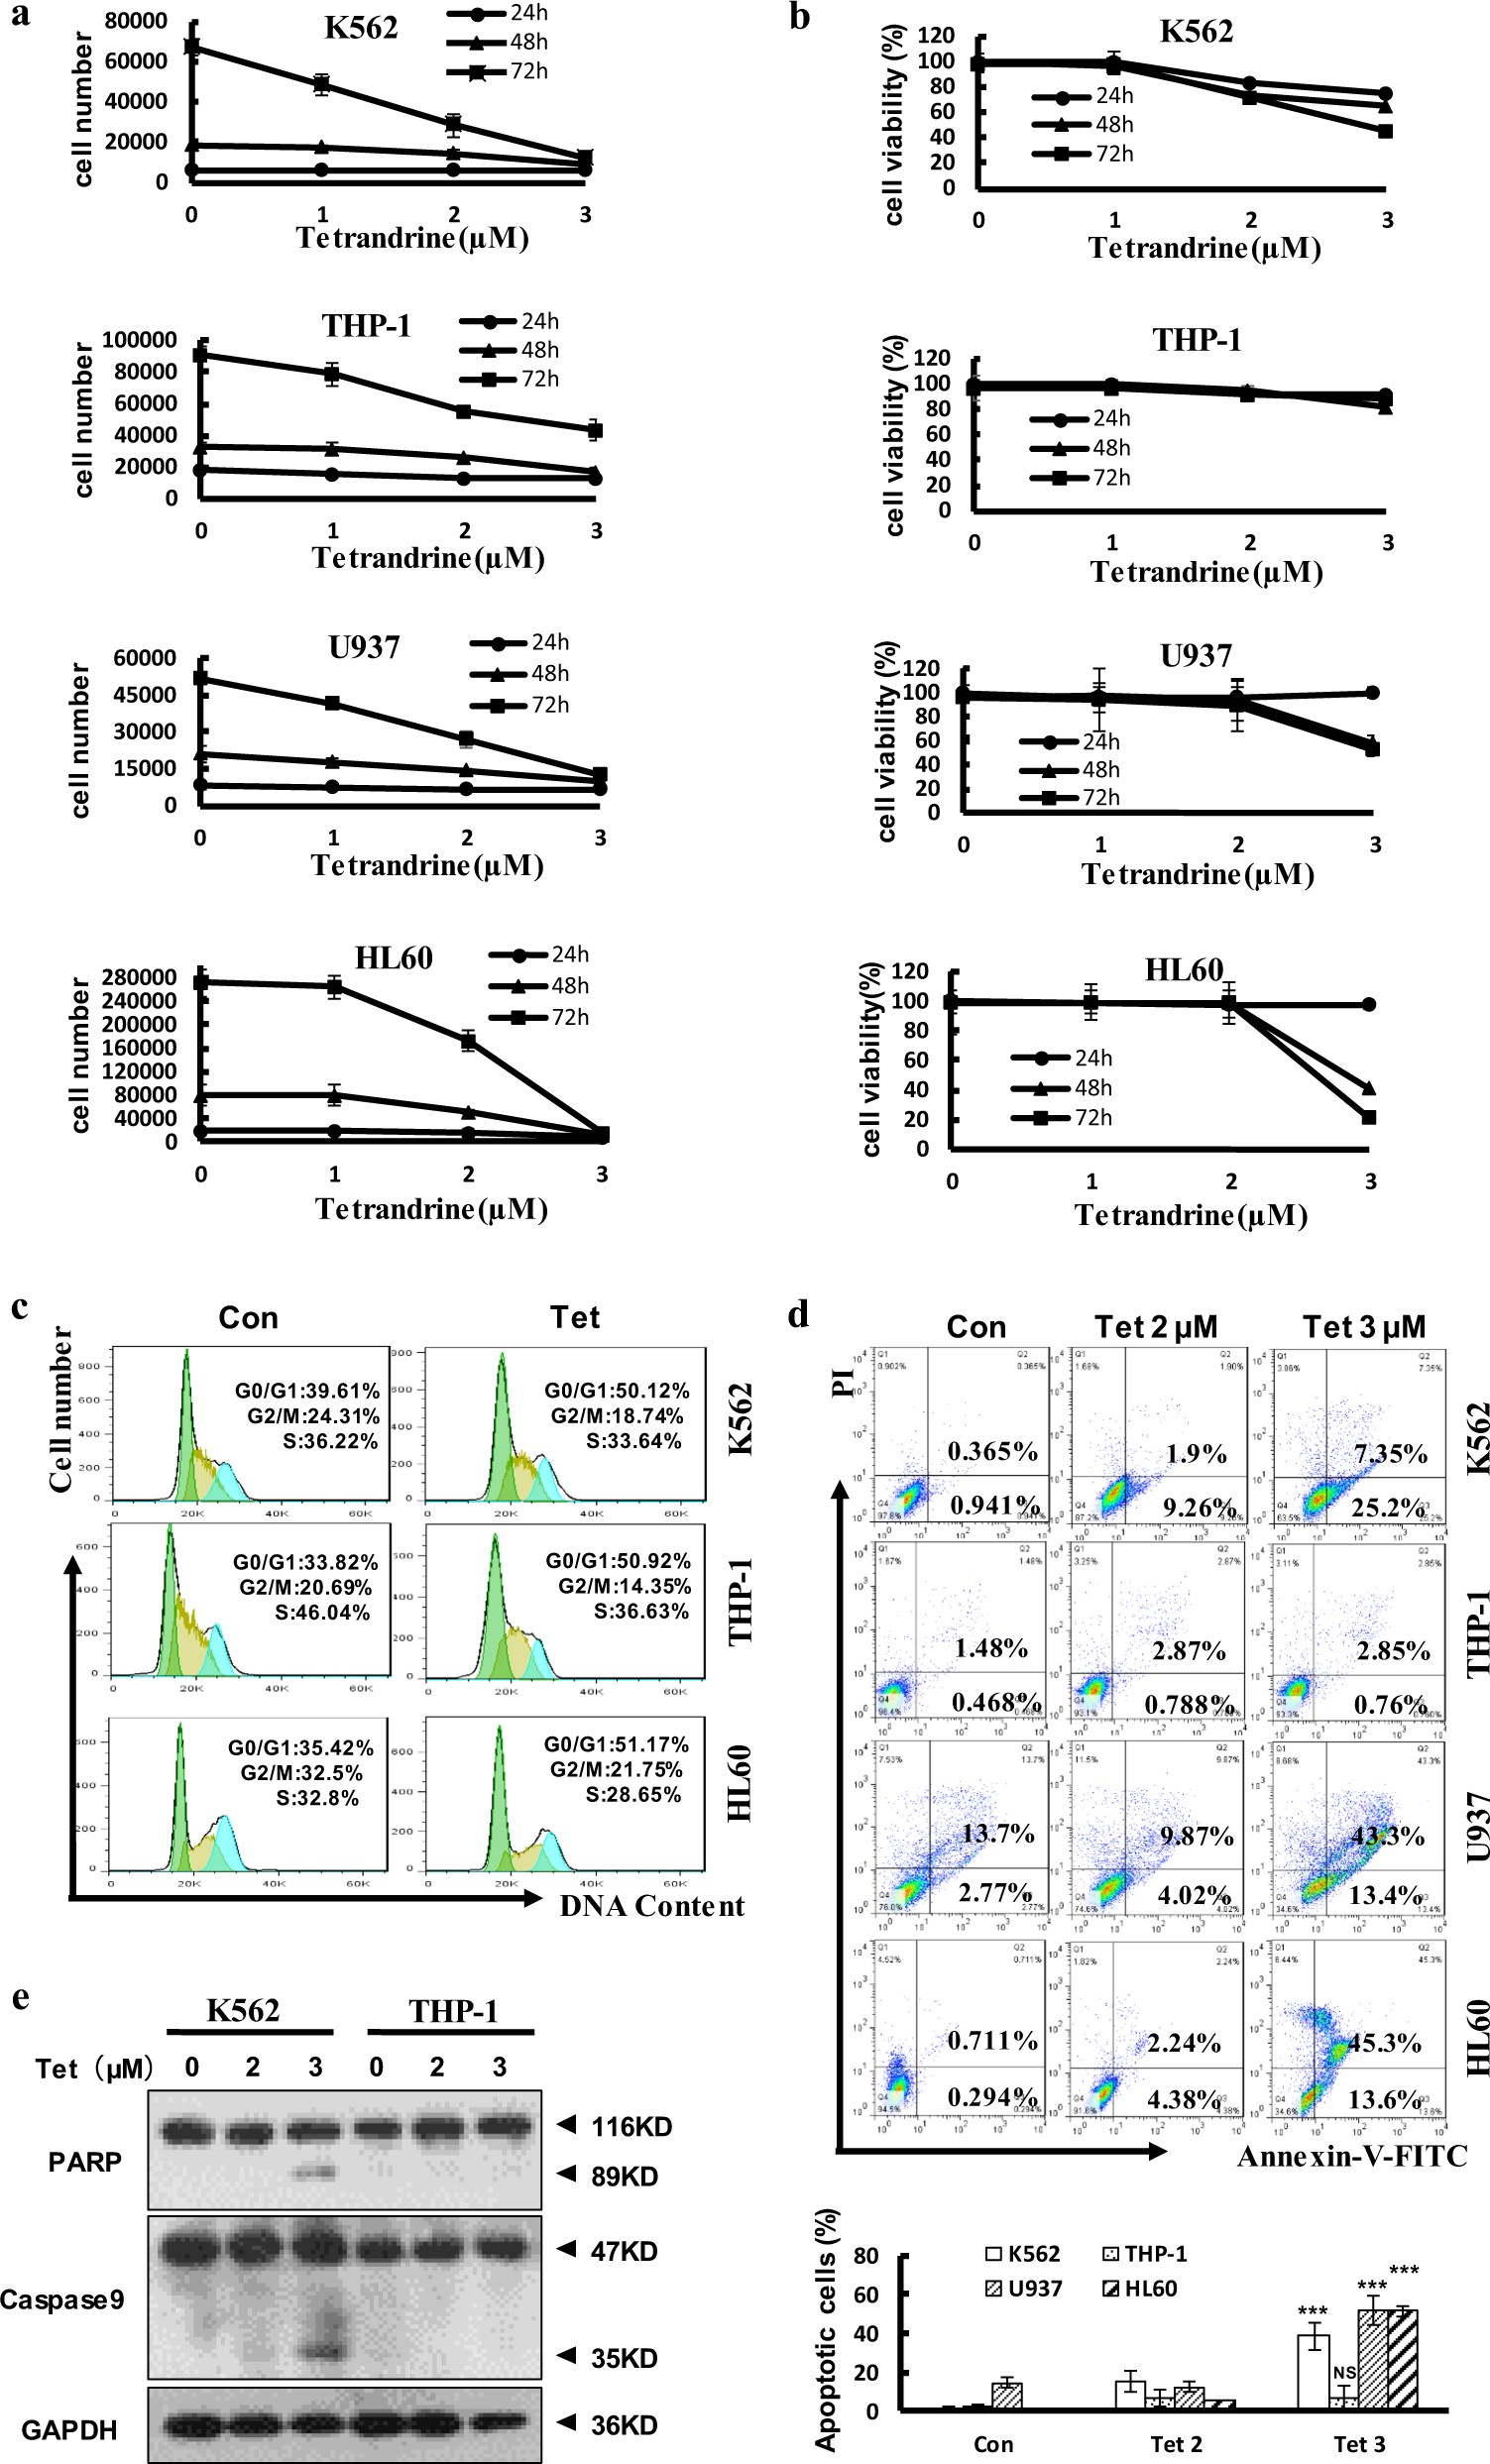 c-MYC and reactive oxygen species play roles in tetrandrine-induced